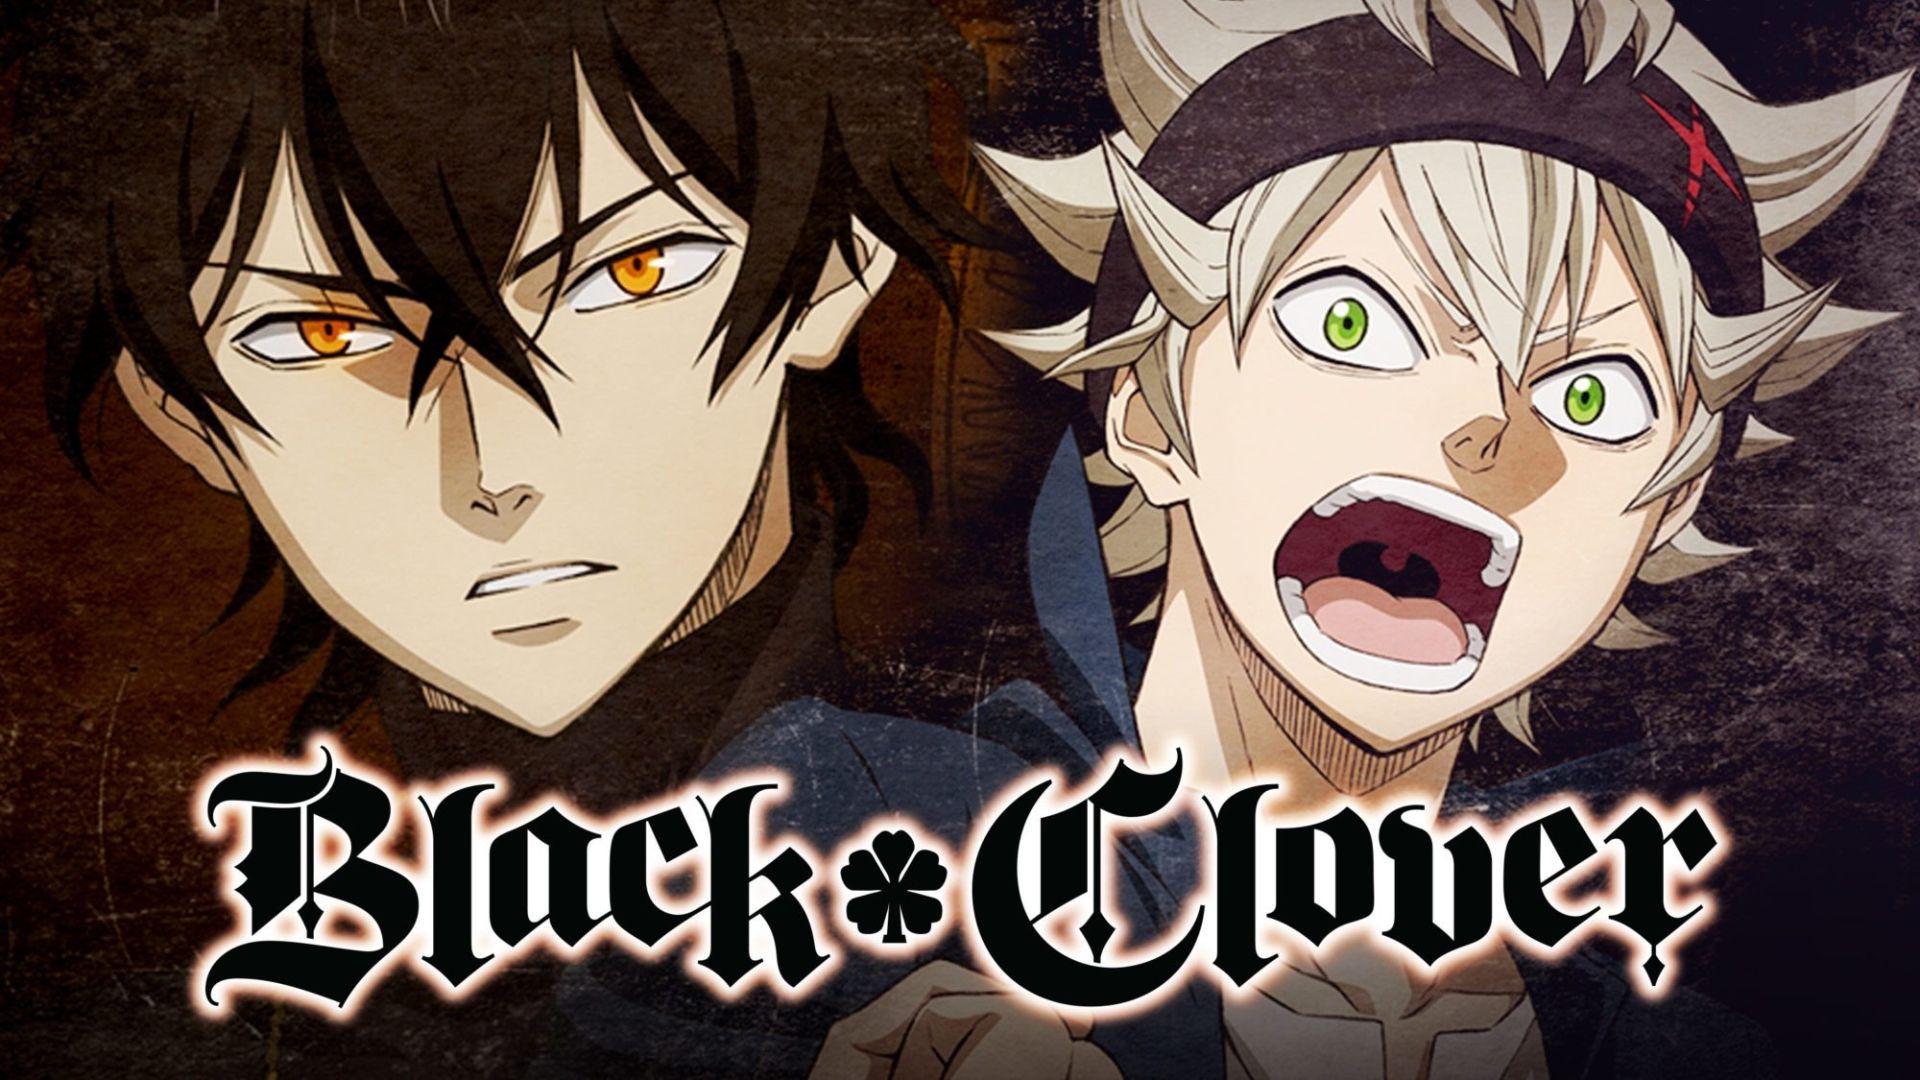 Release date for Black Clover Episode 137, Premiere date, where you can watch, and other update.